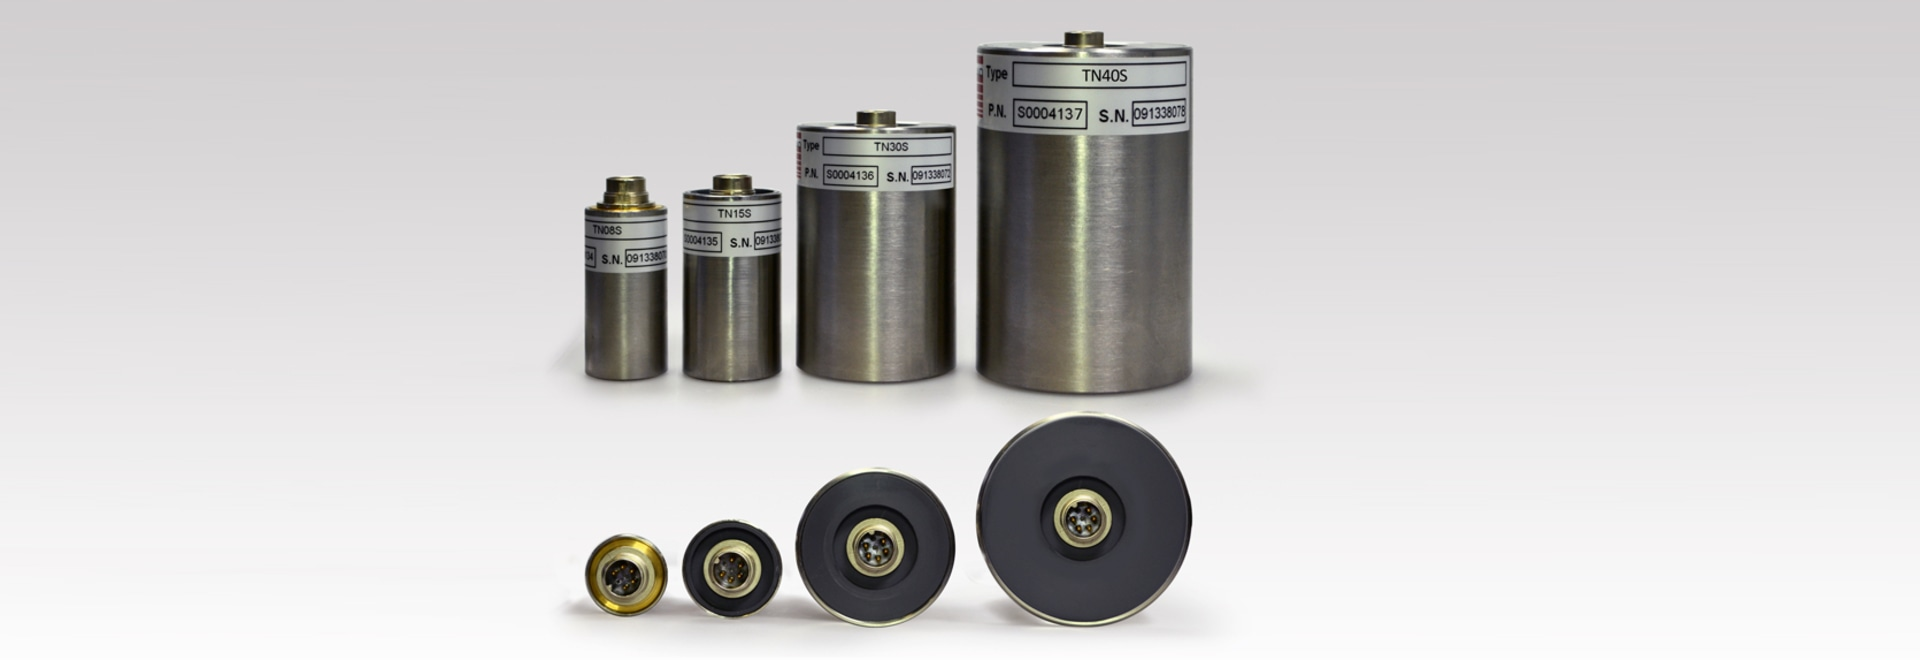 A100 - New Sensors for the Double Sheet Detection System